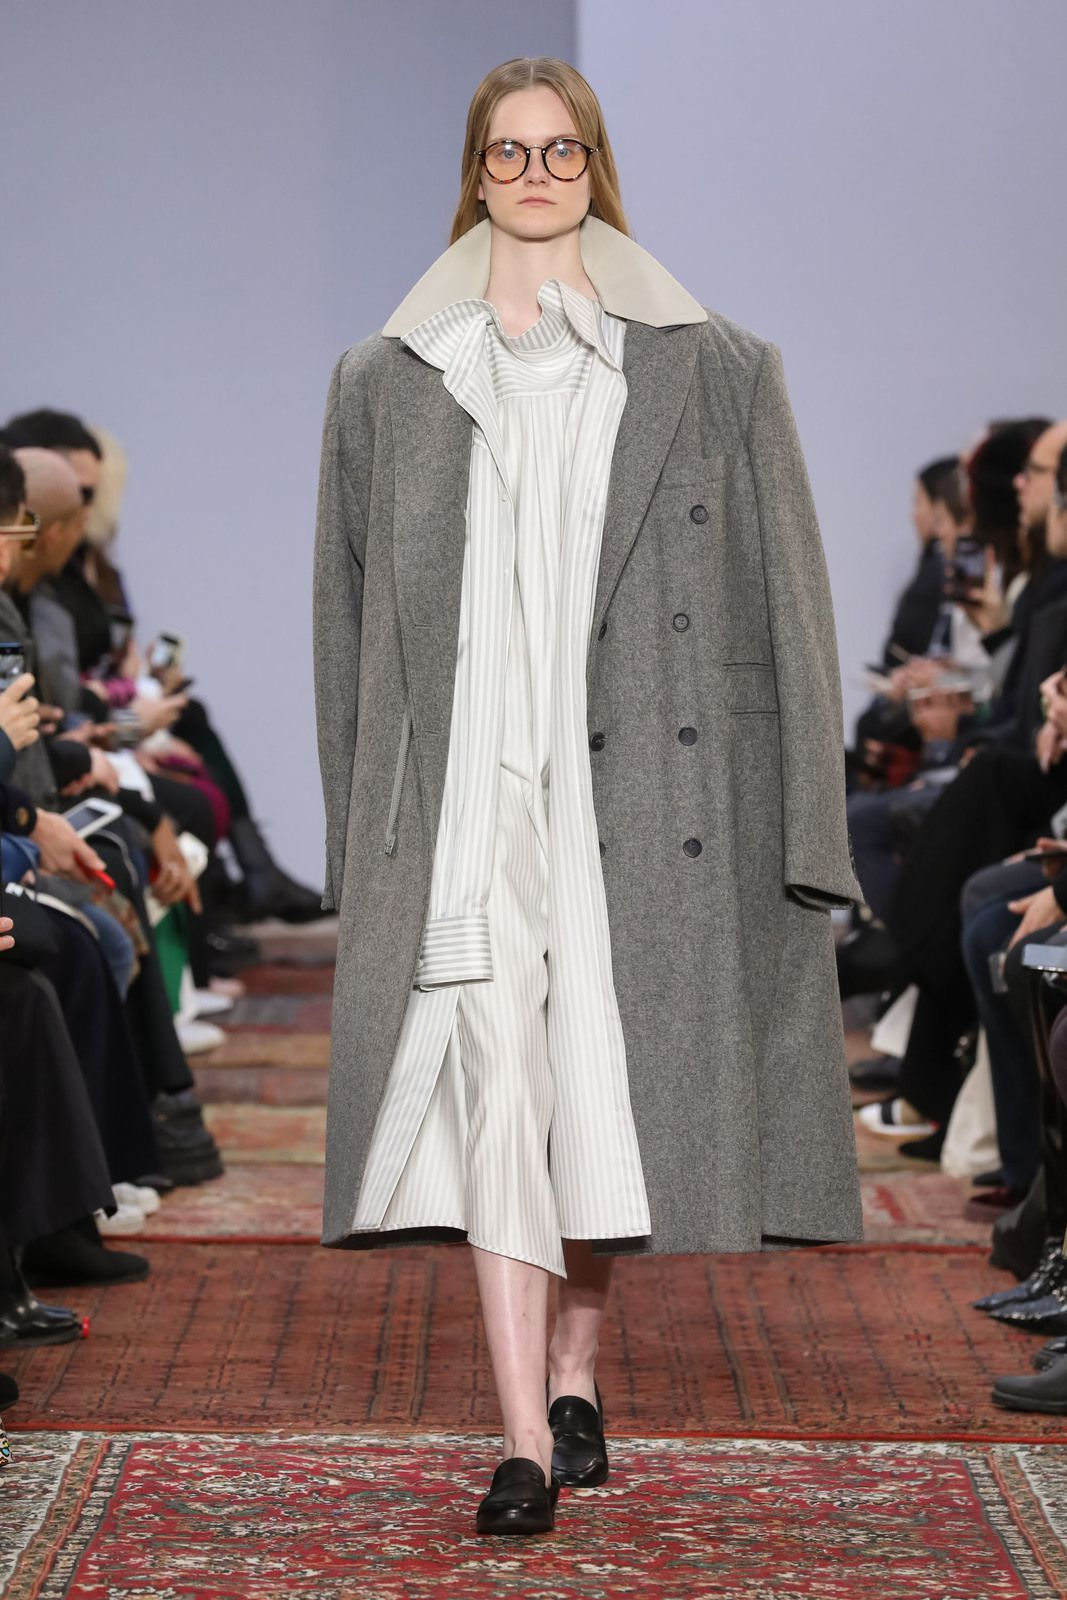 MOOHONG FALL WINTER 2020 RTW COLLECTION AT PFW